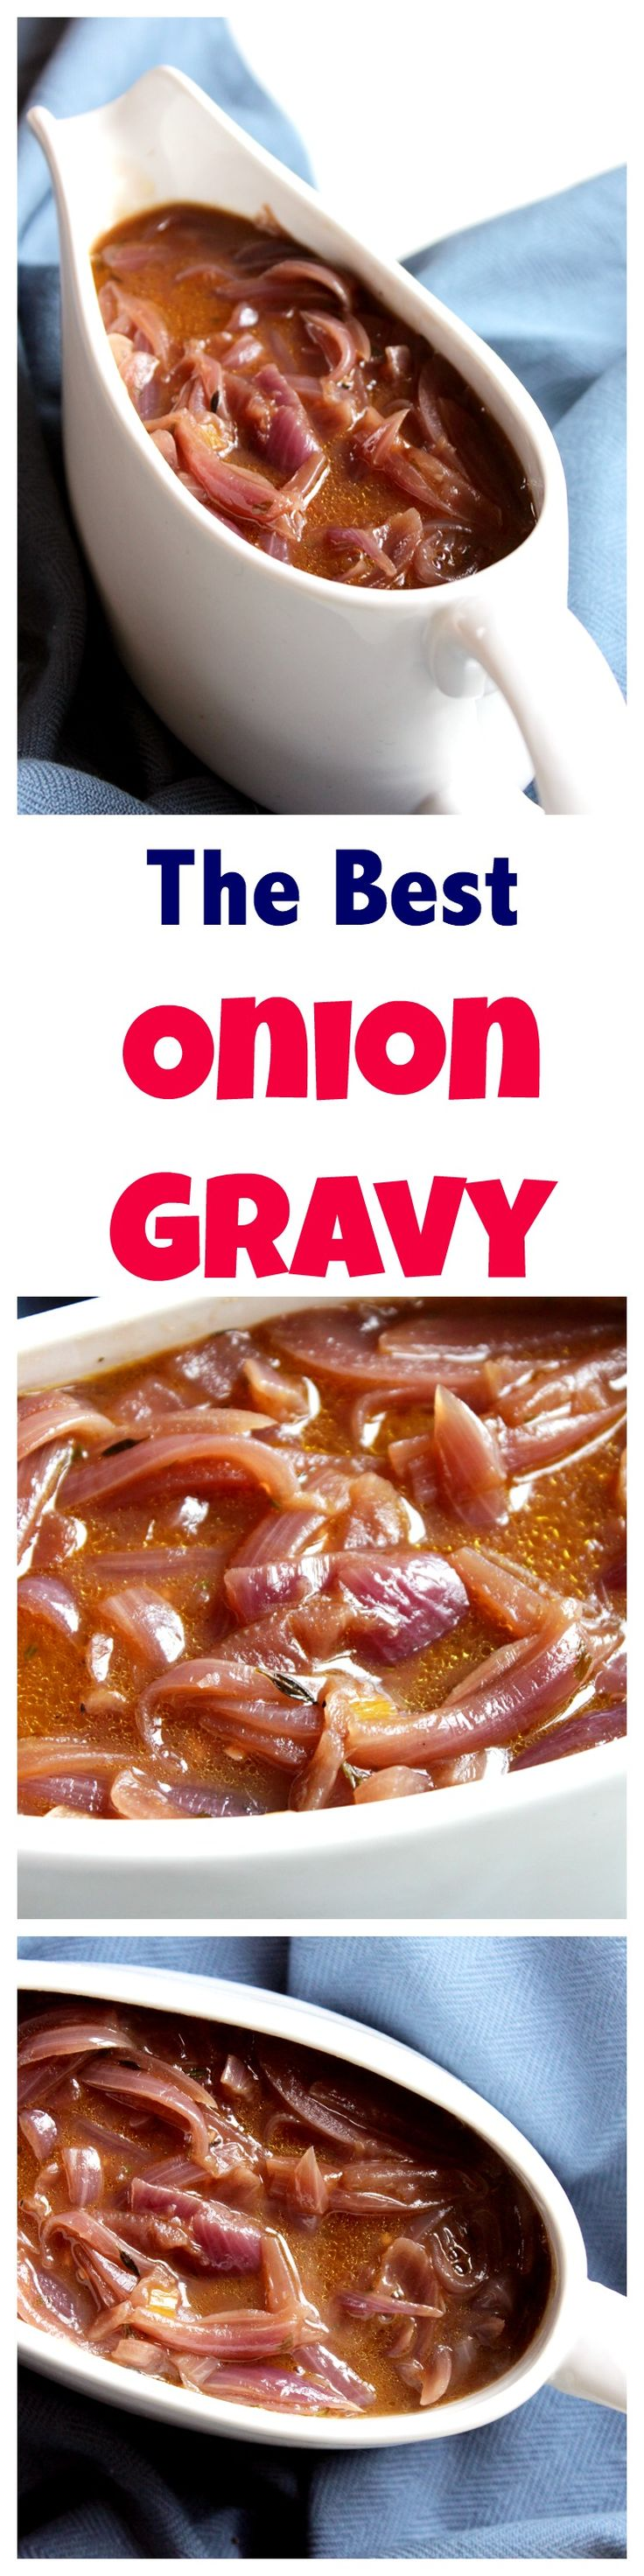 This onion gravy is a perfect accompaniment to bangers and mash, toad in the hole or a Sunday roast. Made from scratch and full of flavour.  Vegetarian gravy | Red onion gravy | Thanksgiving side dish | Christmas side dish | gravy from scratch #redoniongravy #thanksgivingsidedish #christmassidedish